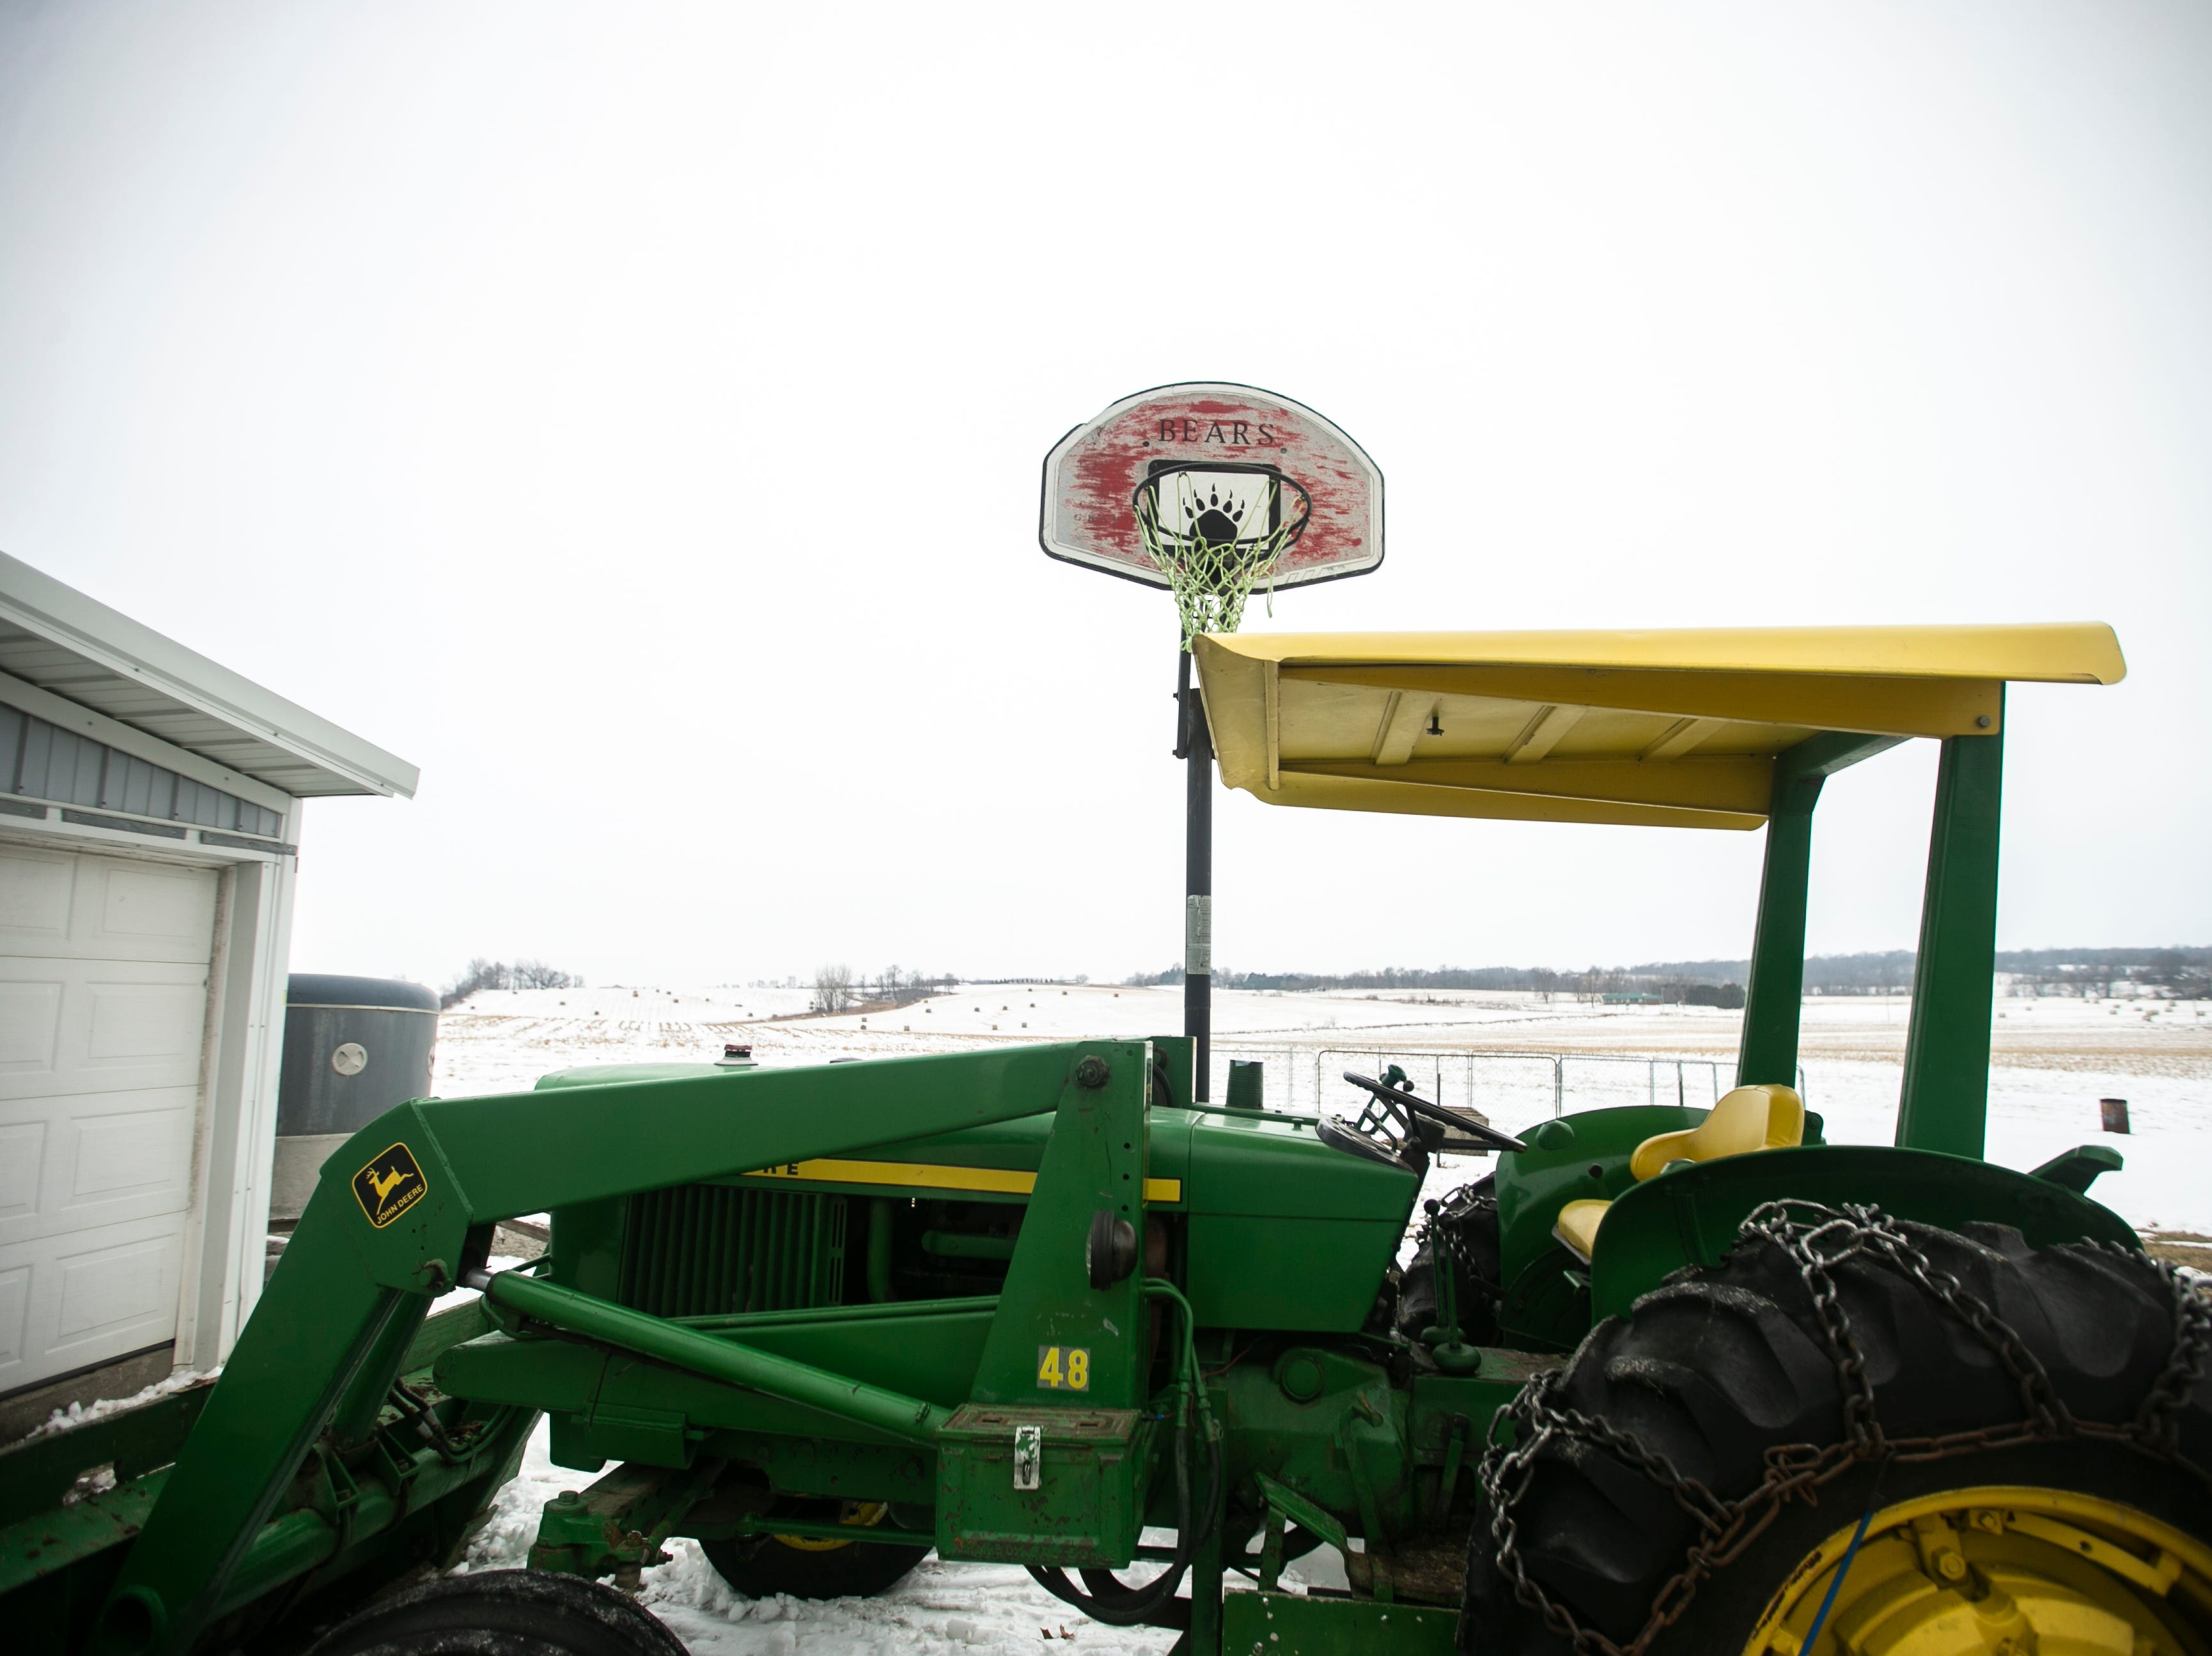 A tractor sits below a West Branch Bears basketball hoop on Thursday, Jan. 17, 2019, at Natural Oak Pork farm in West Branch, Iowa.